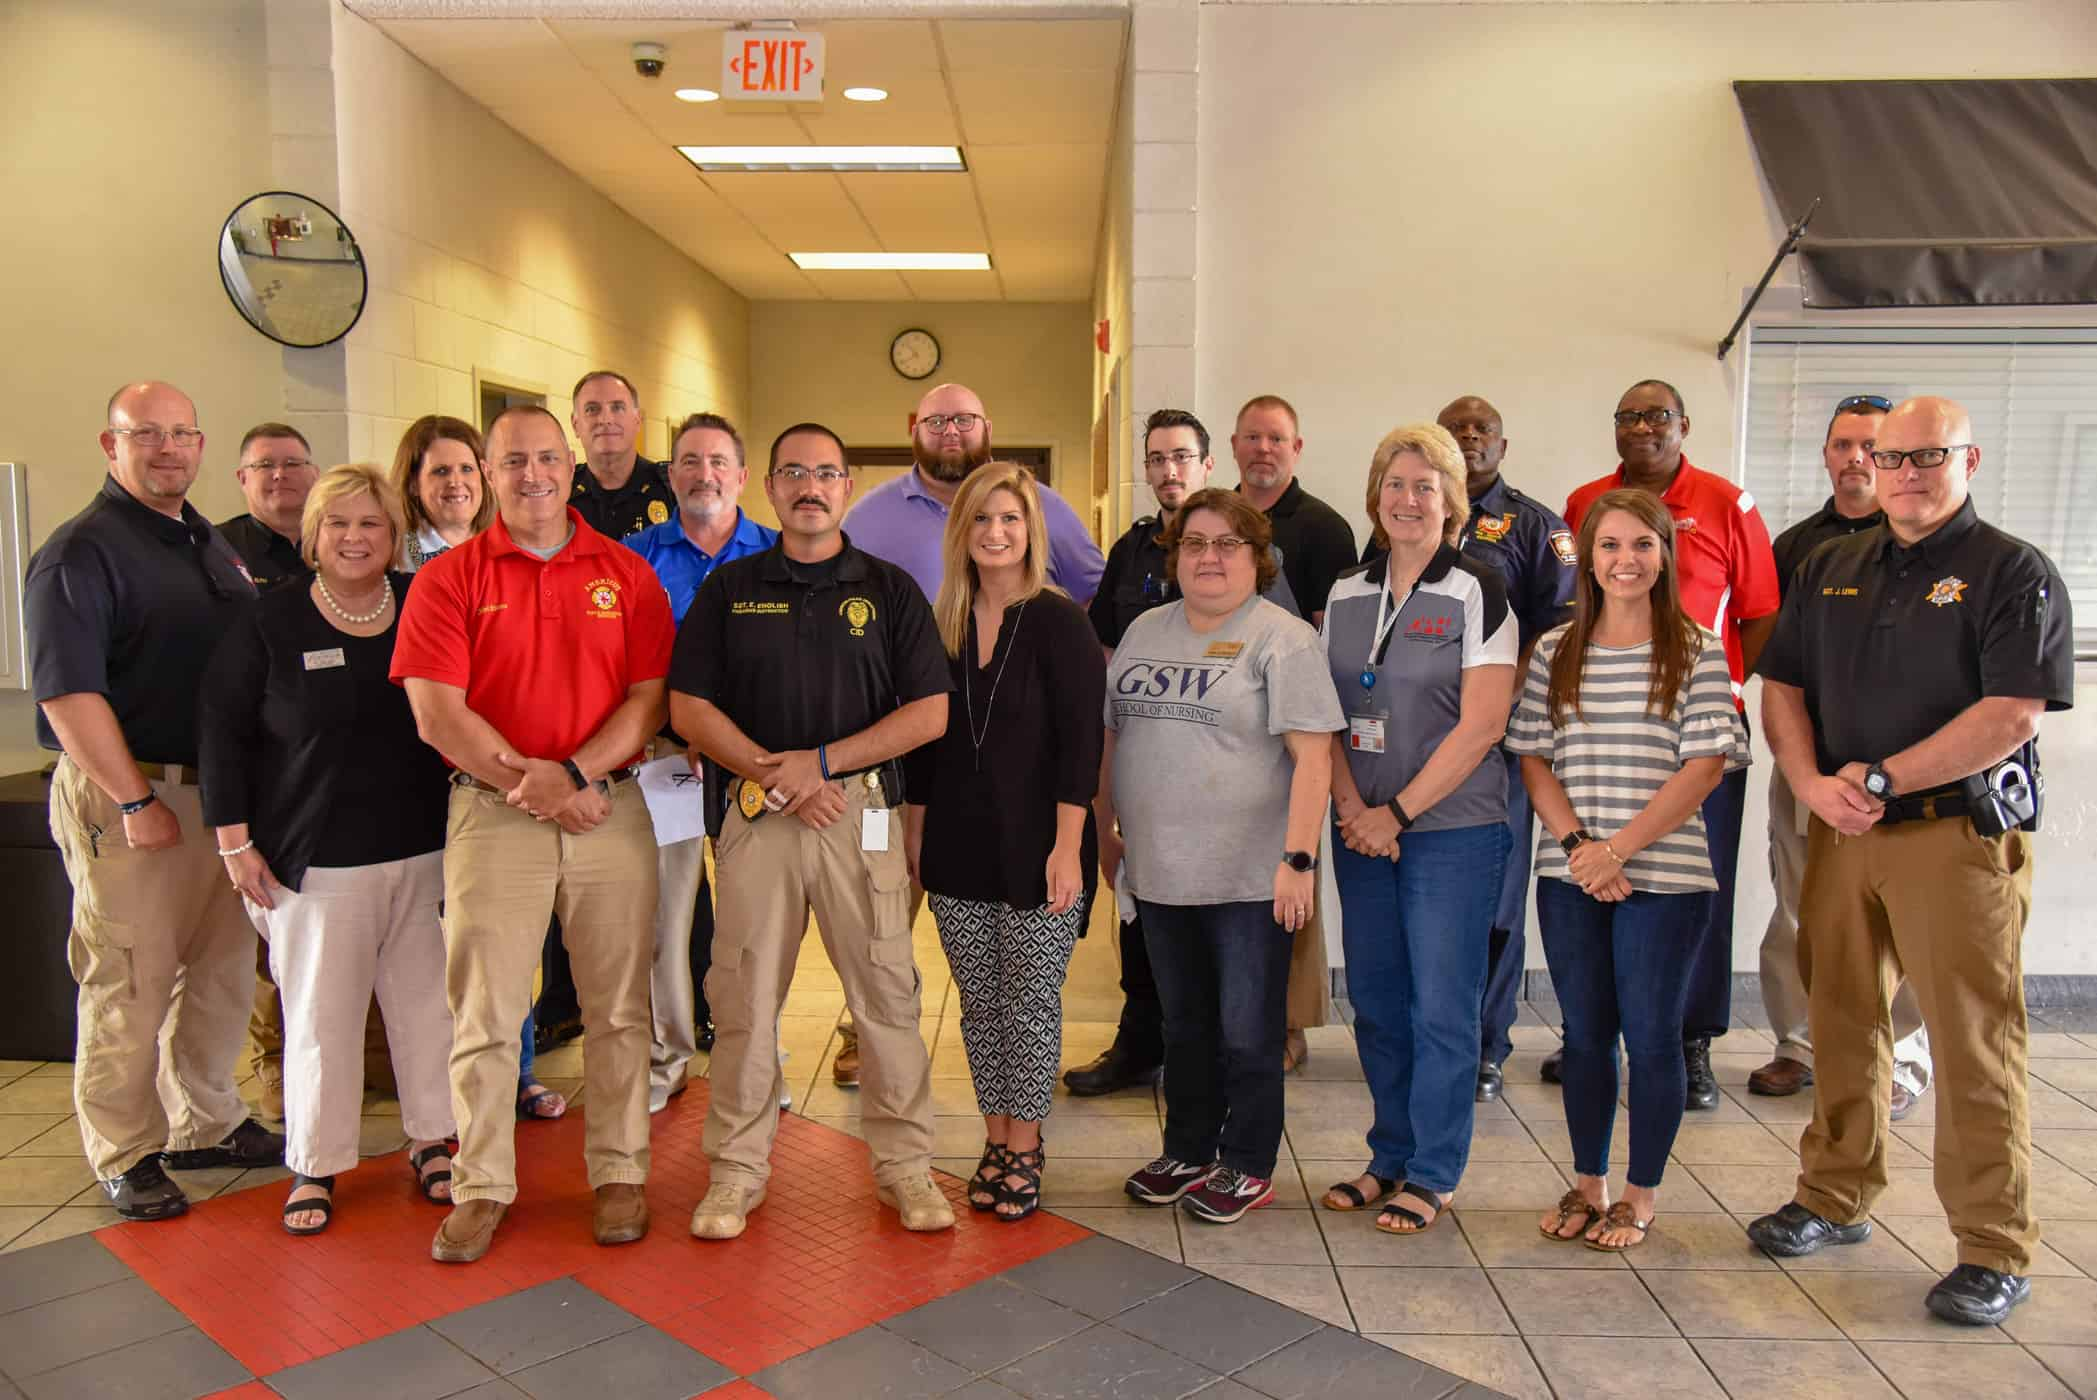 Representatives from participating agencies are shown together after a planning meeting for the upcoming emergency response training drill.